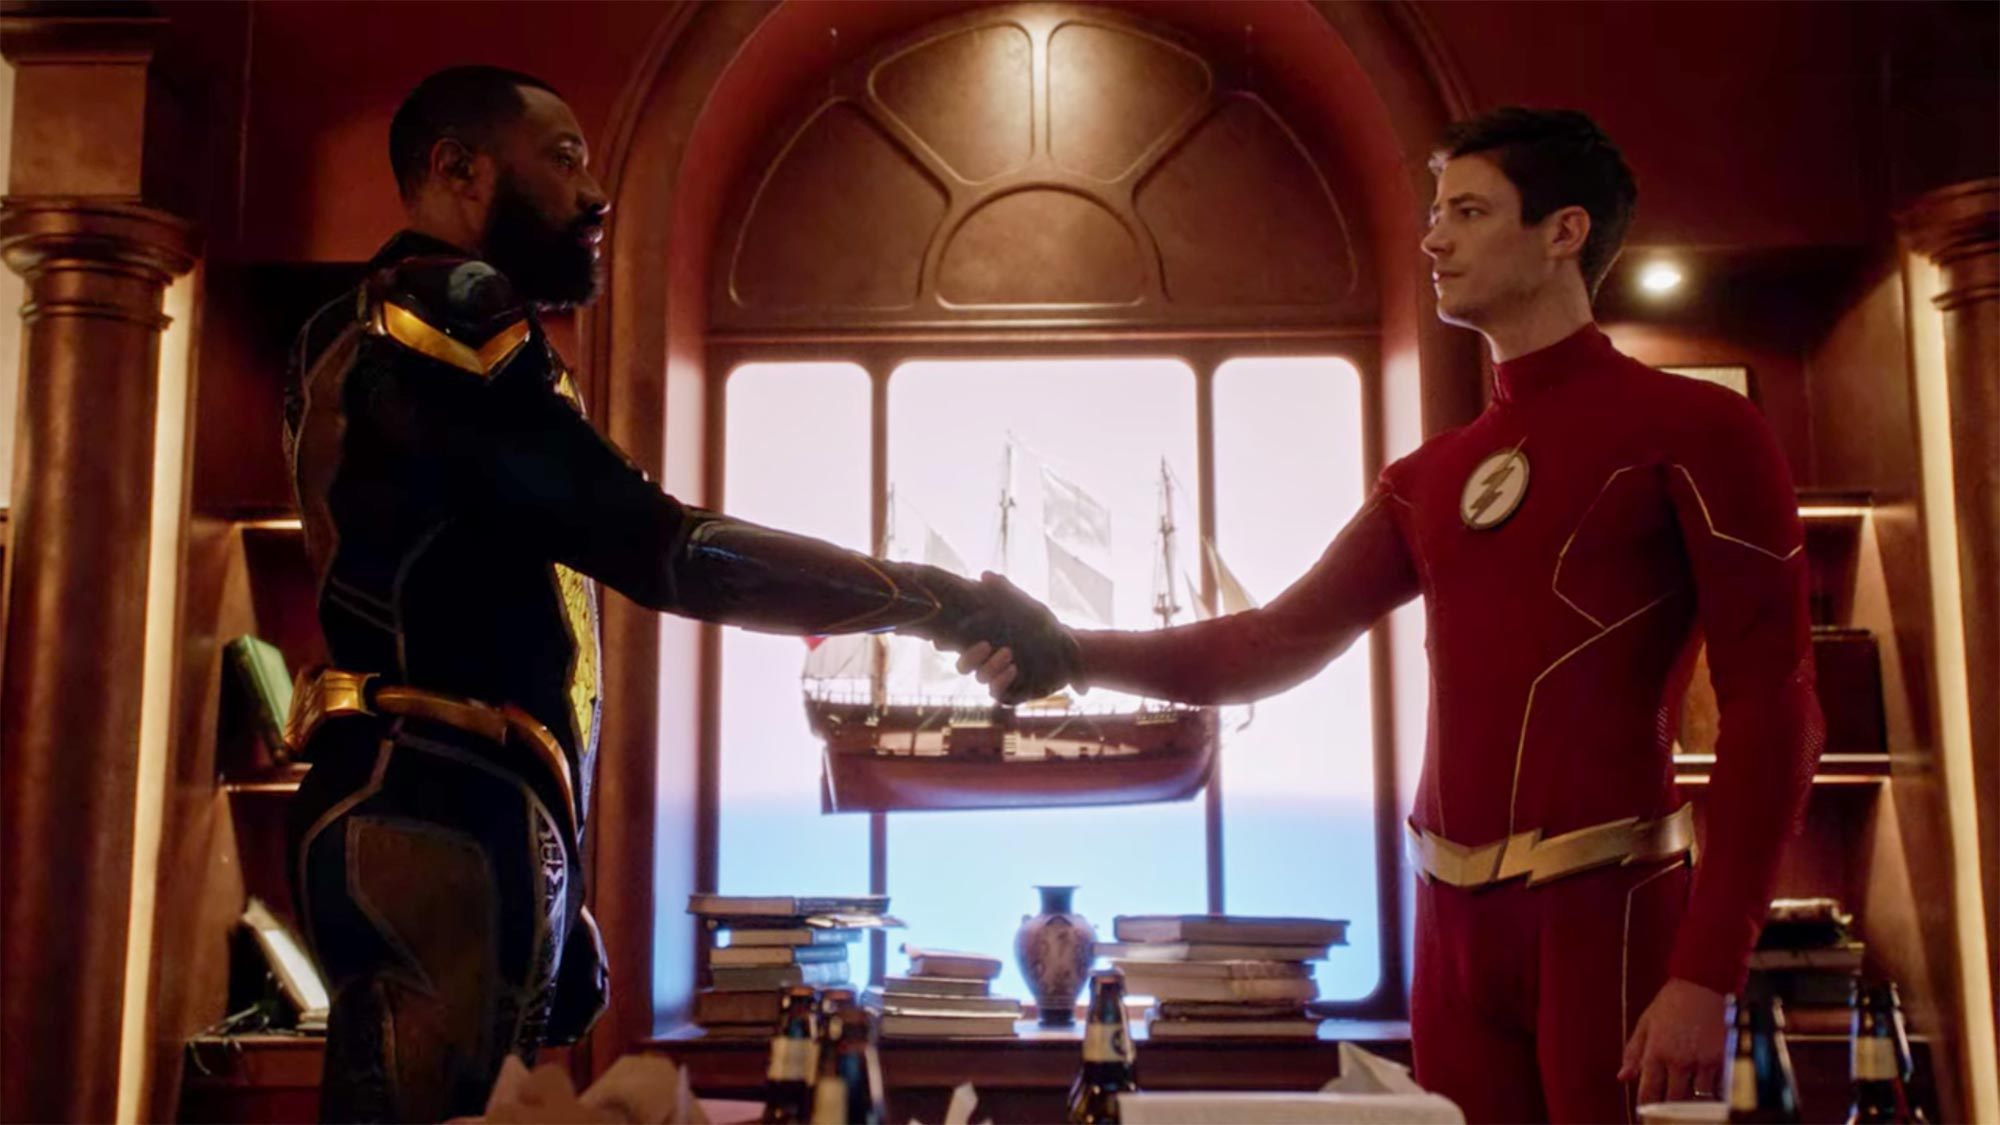 """Cress Williams and Grant Gustin from """"Crisis on Infinite Earths, Part 3"""" (The Flash)"""